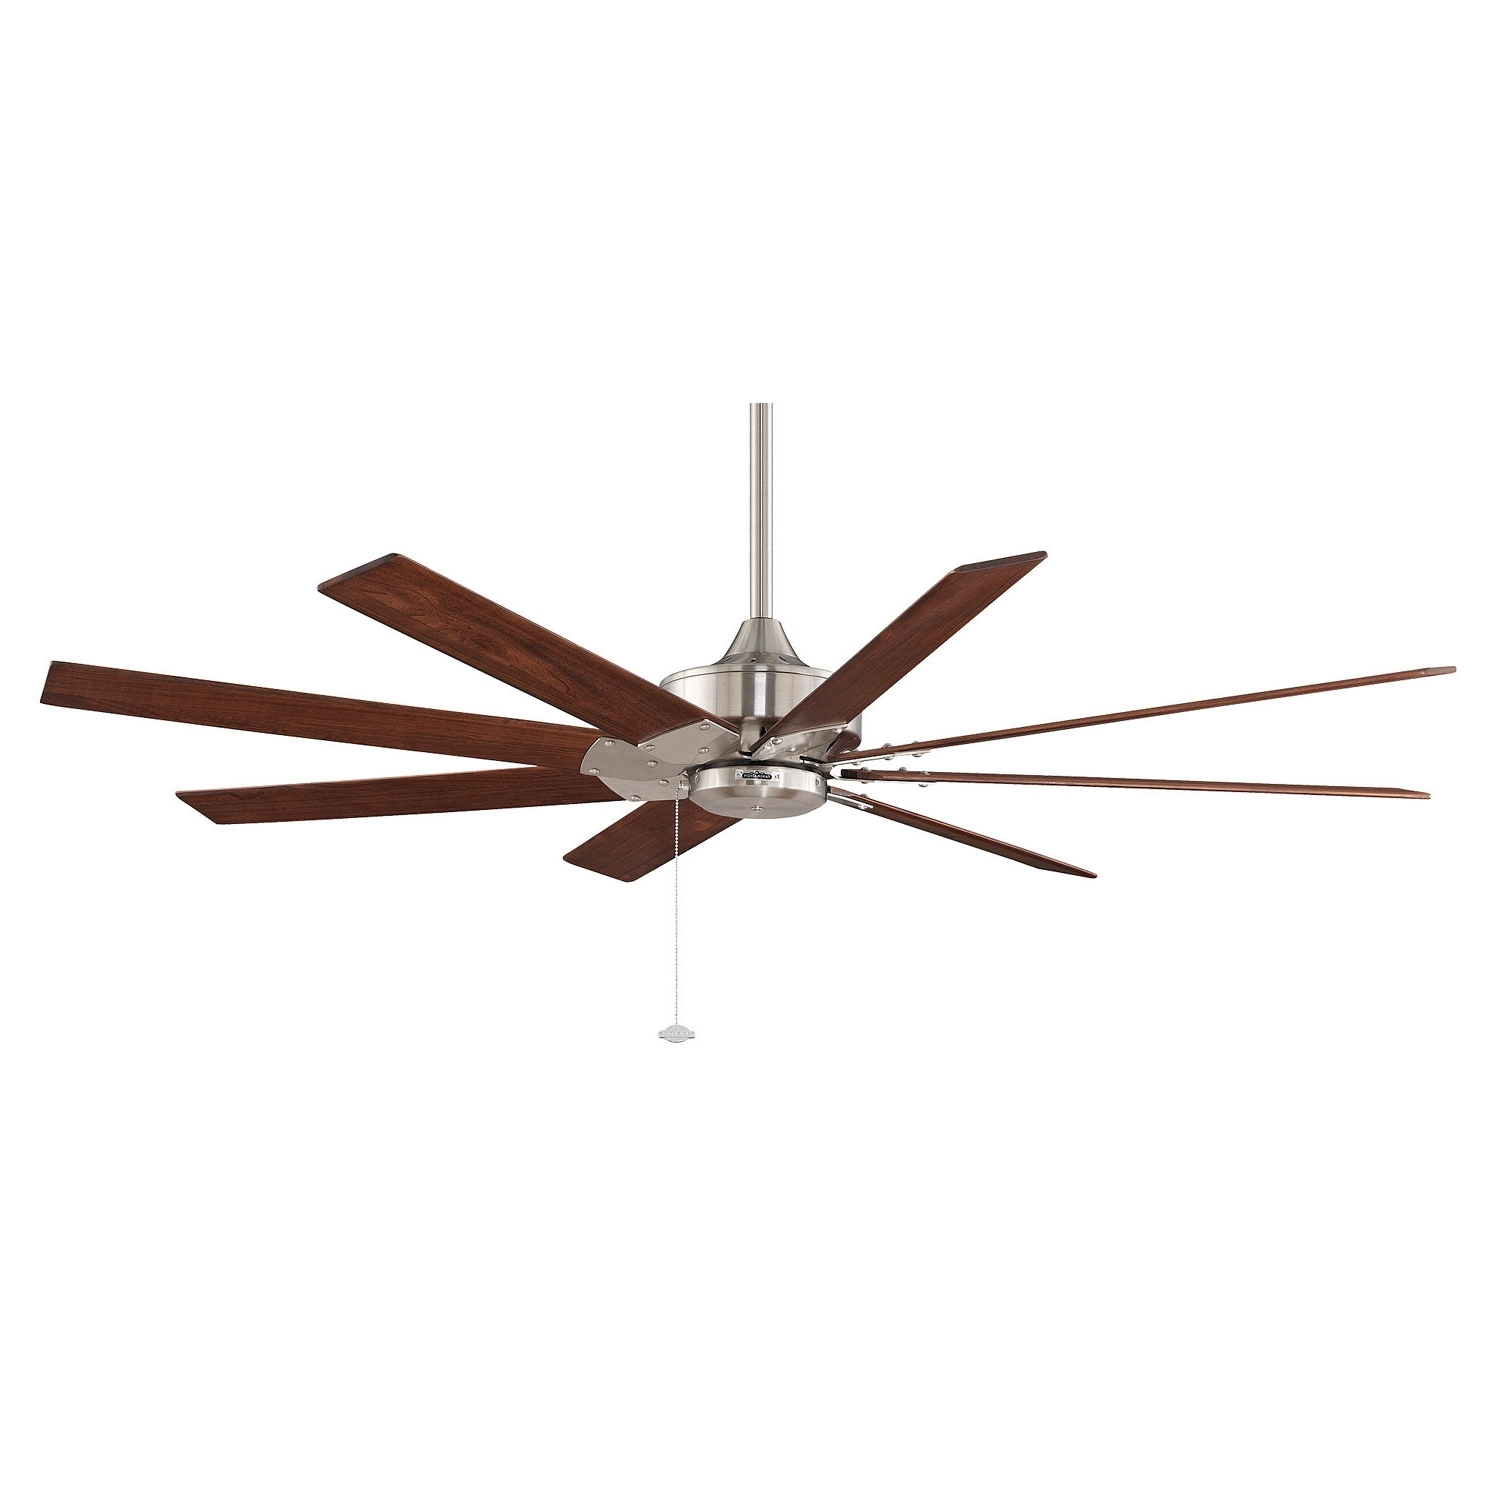 Most Recent Commercial Outdoor Ceiling Fans Regarding Fanimation Levon Brushed Nickel 63 Inch Energy Star Ceiling Fan With (View 11 of 20)